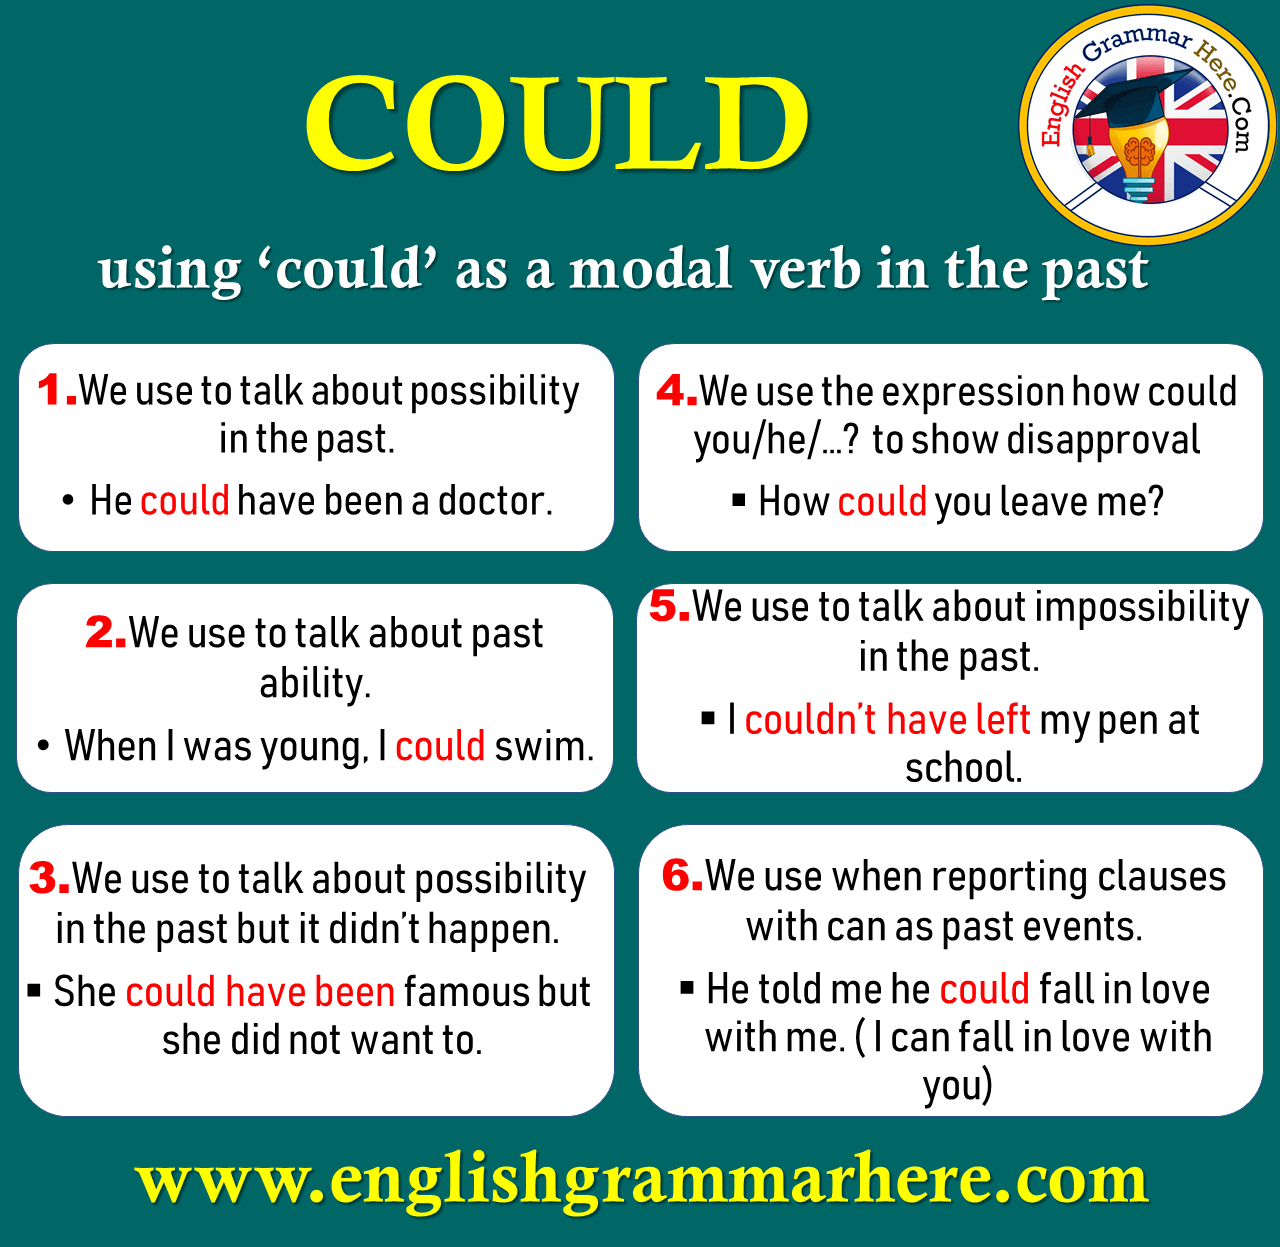 How to Use Could and Example Sentences in English Grammar